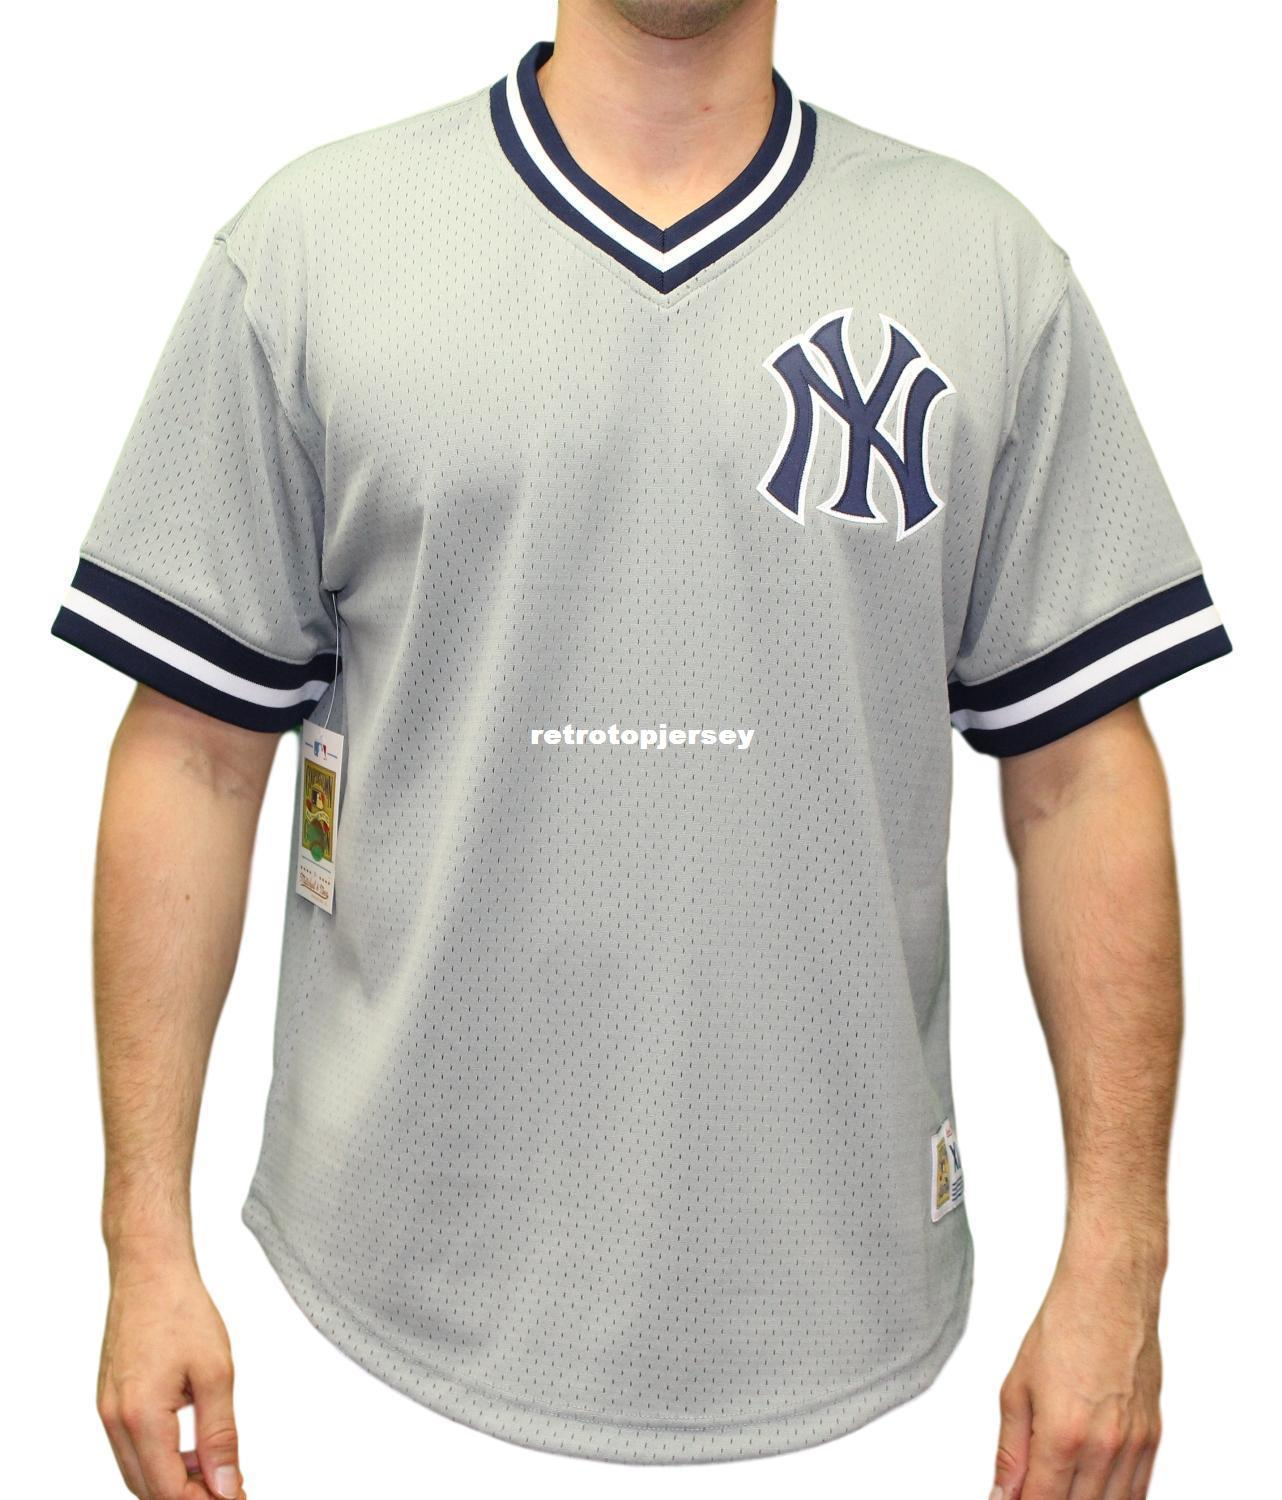 """New York Mitchell Ness Chemise Jersey Maillot """"Gagnant du Jeu"""" pour Homme"""